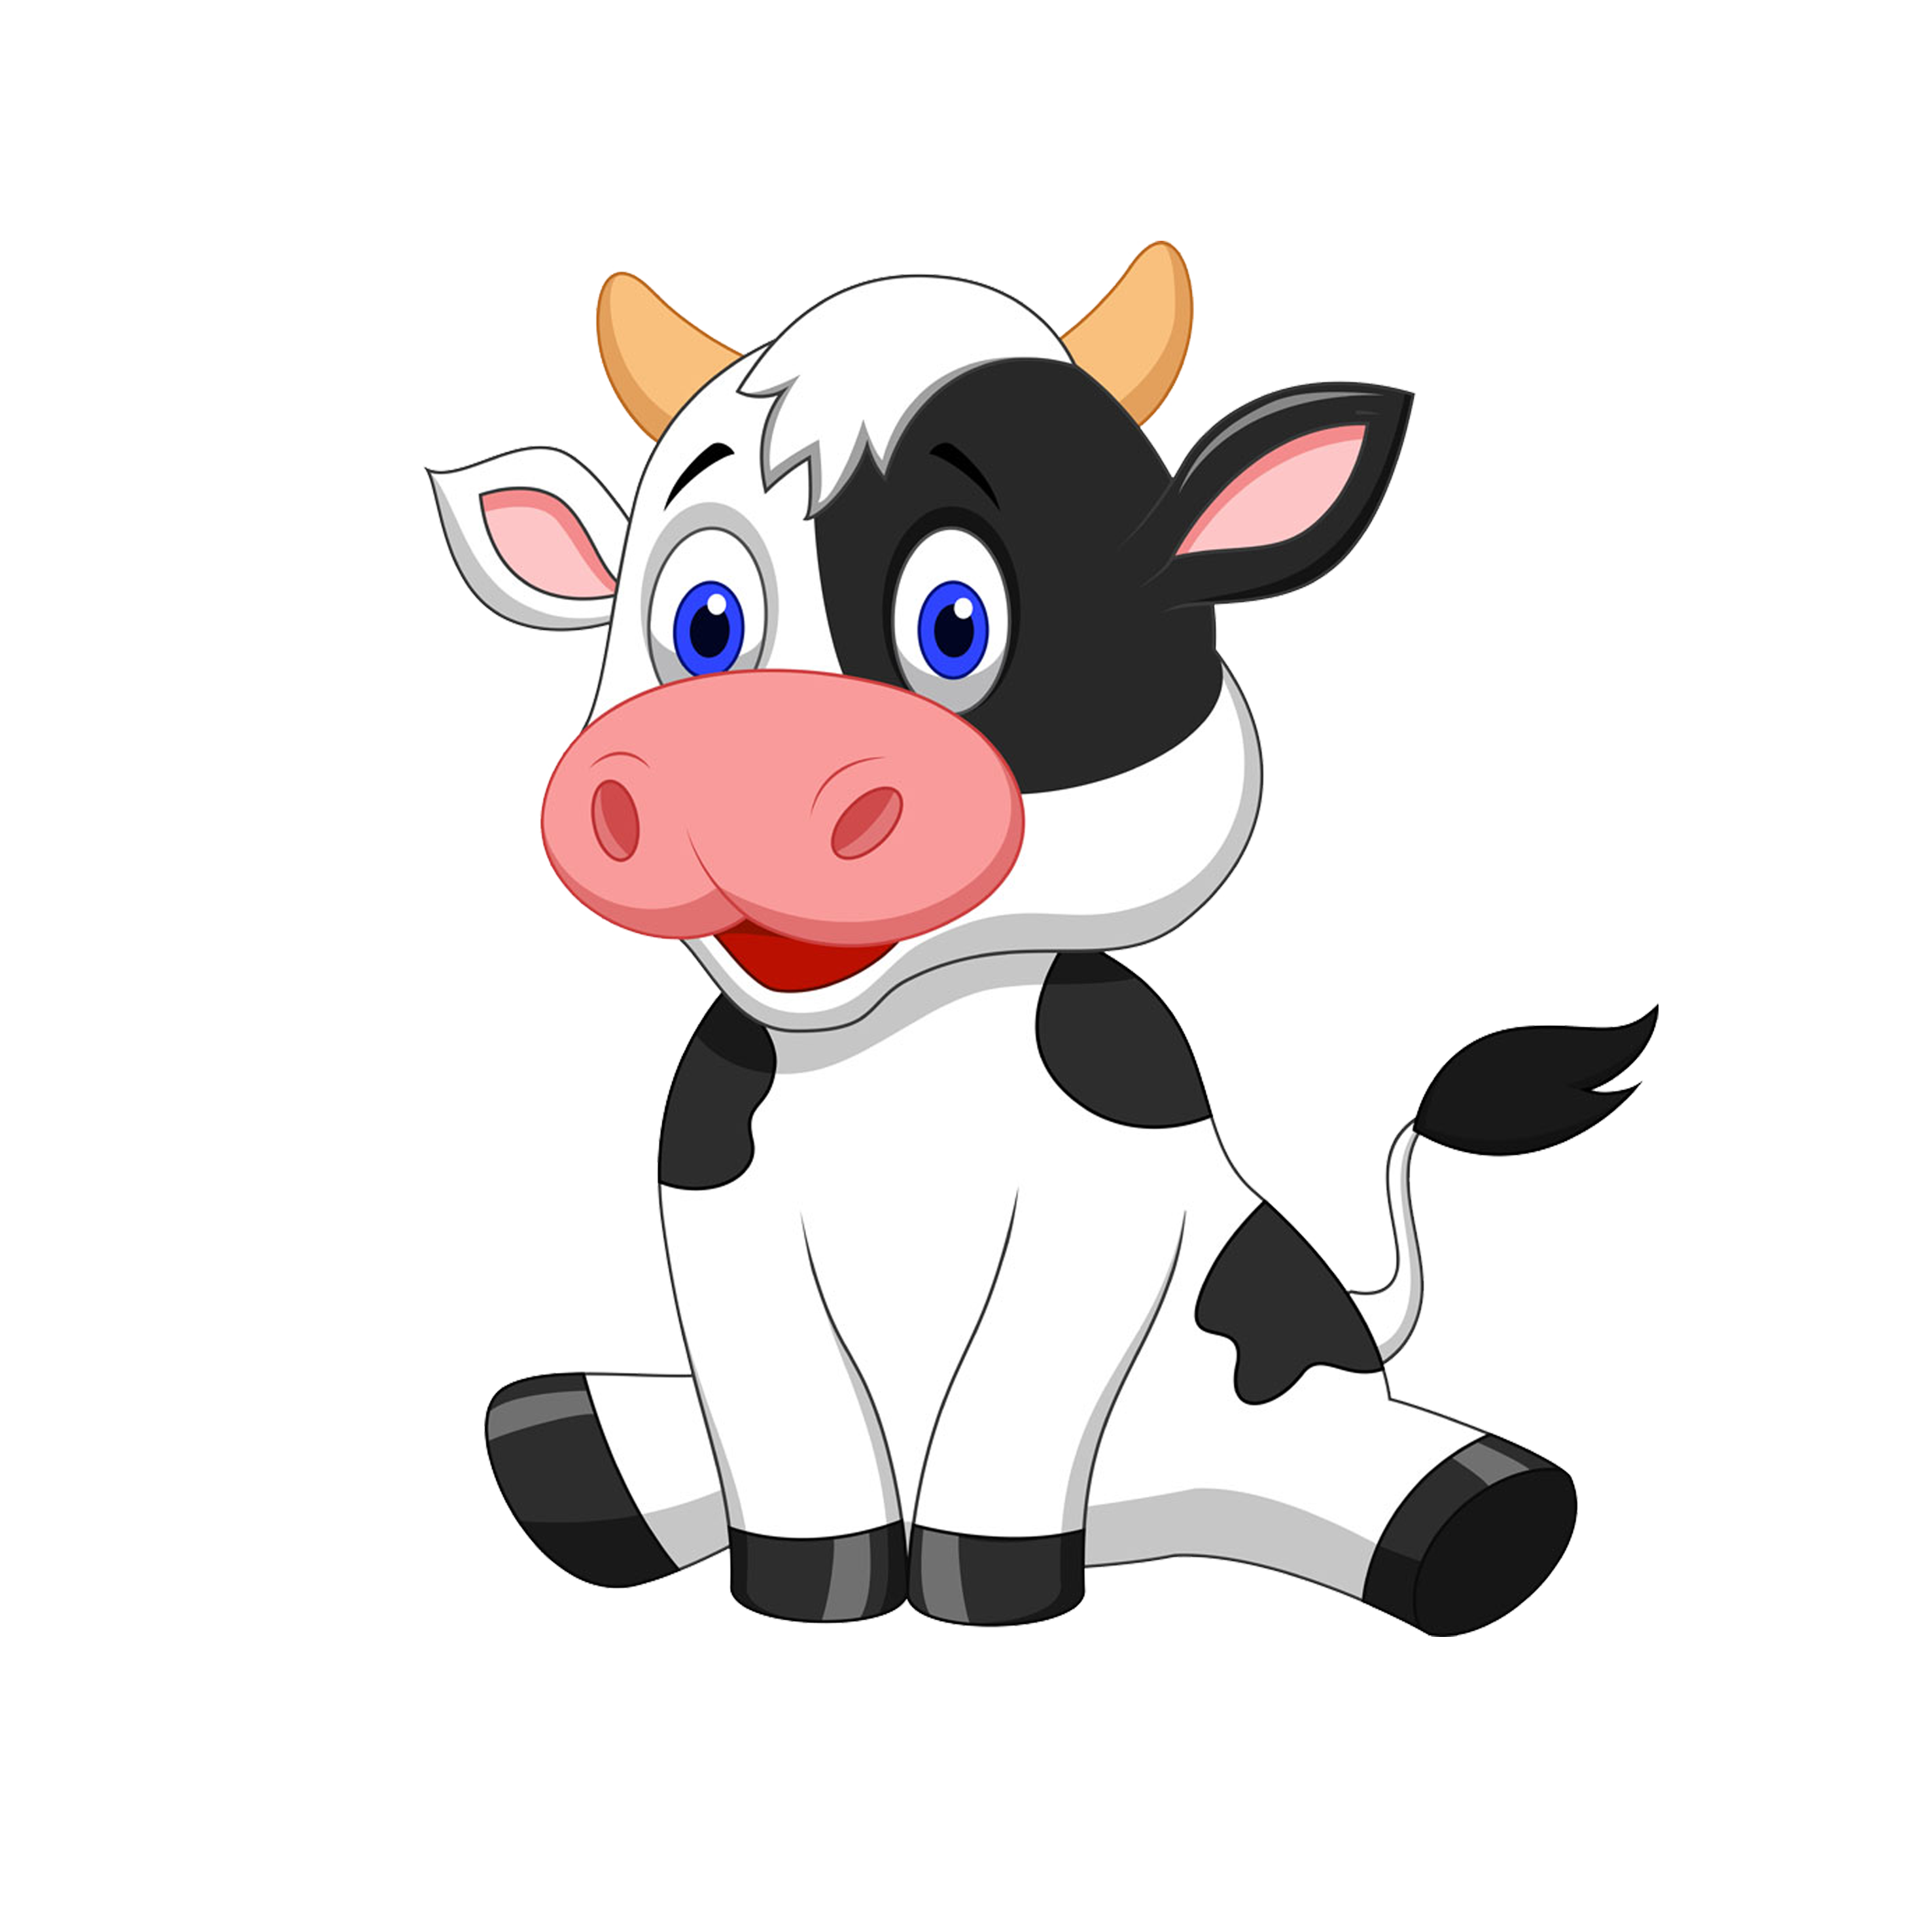 Cattle cartoon stock photography. Cows clipart dairy cow